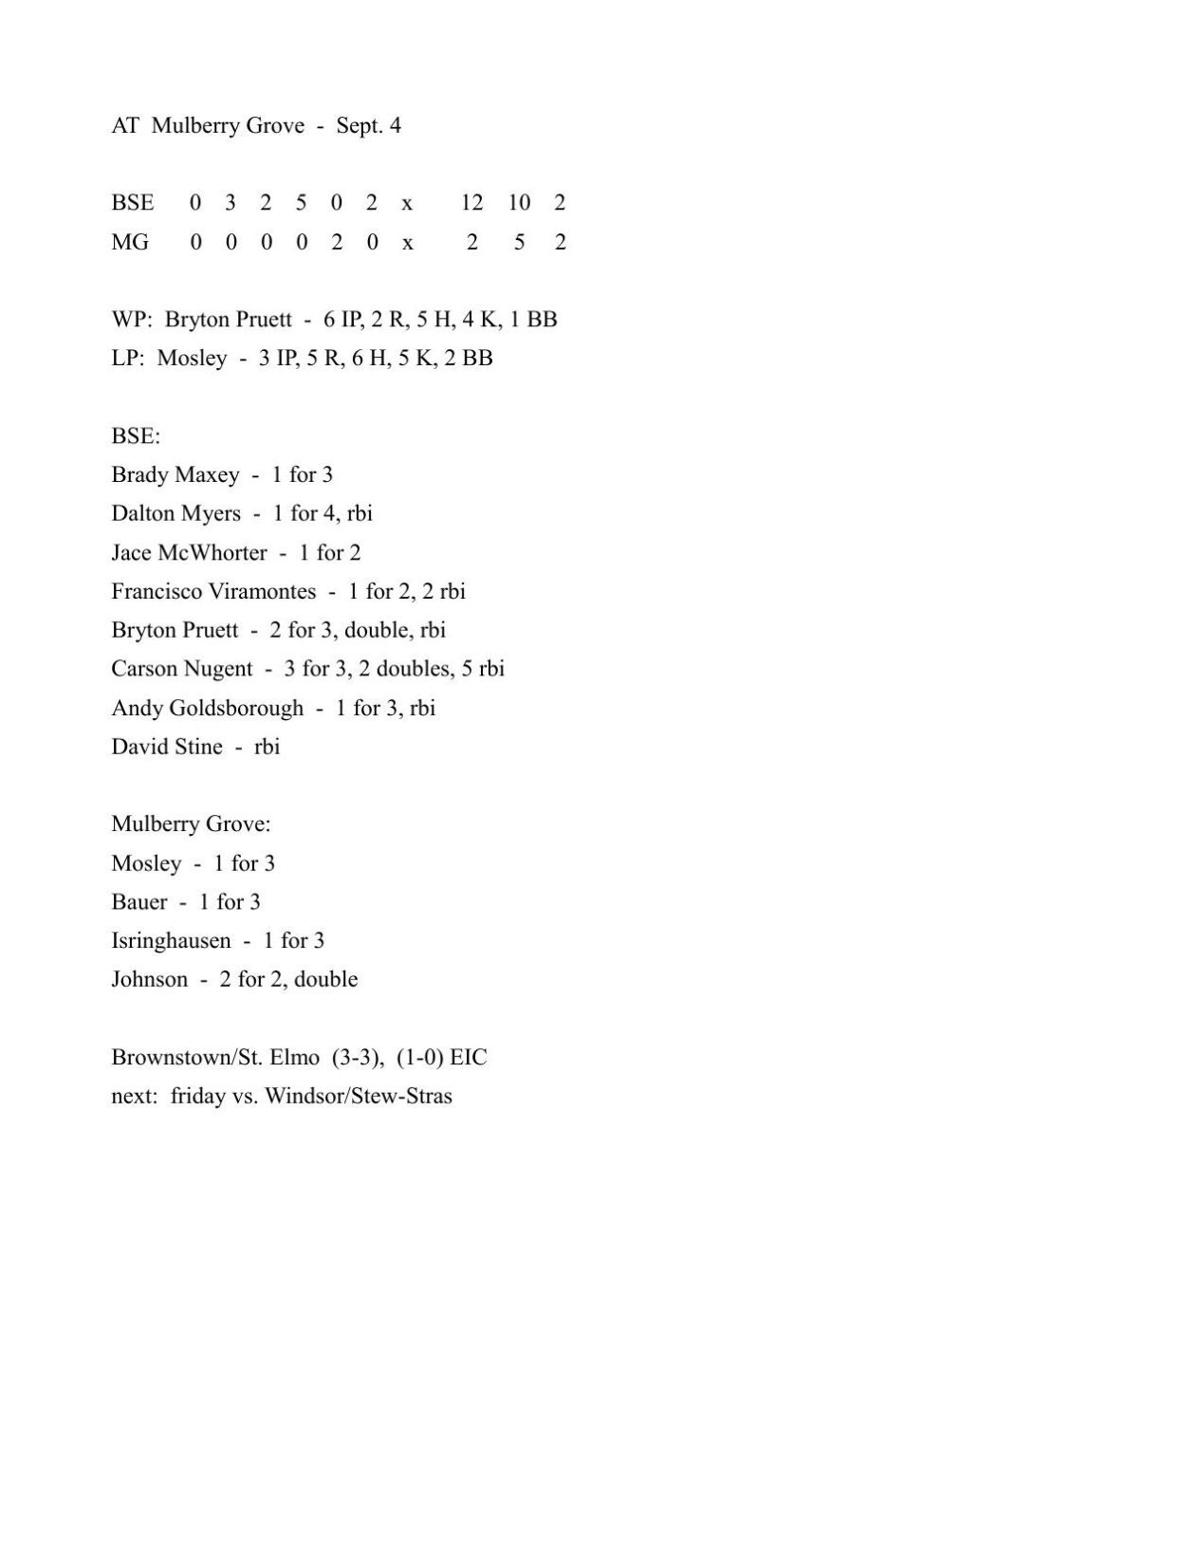 Baseball: Brownstown/St. Elmo 12, Mulberry Grove 2